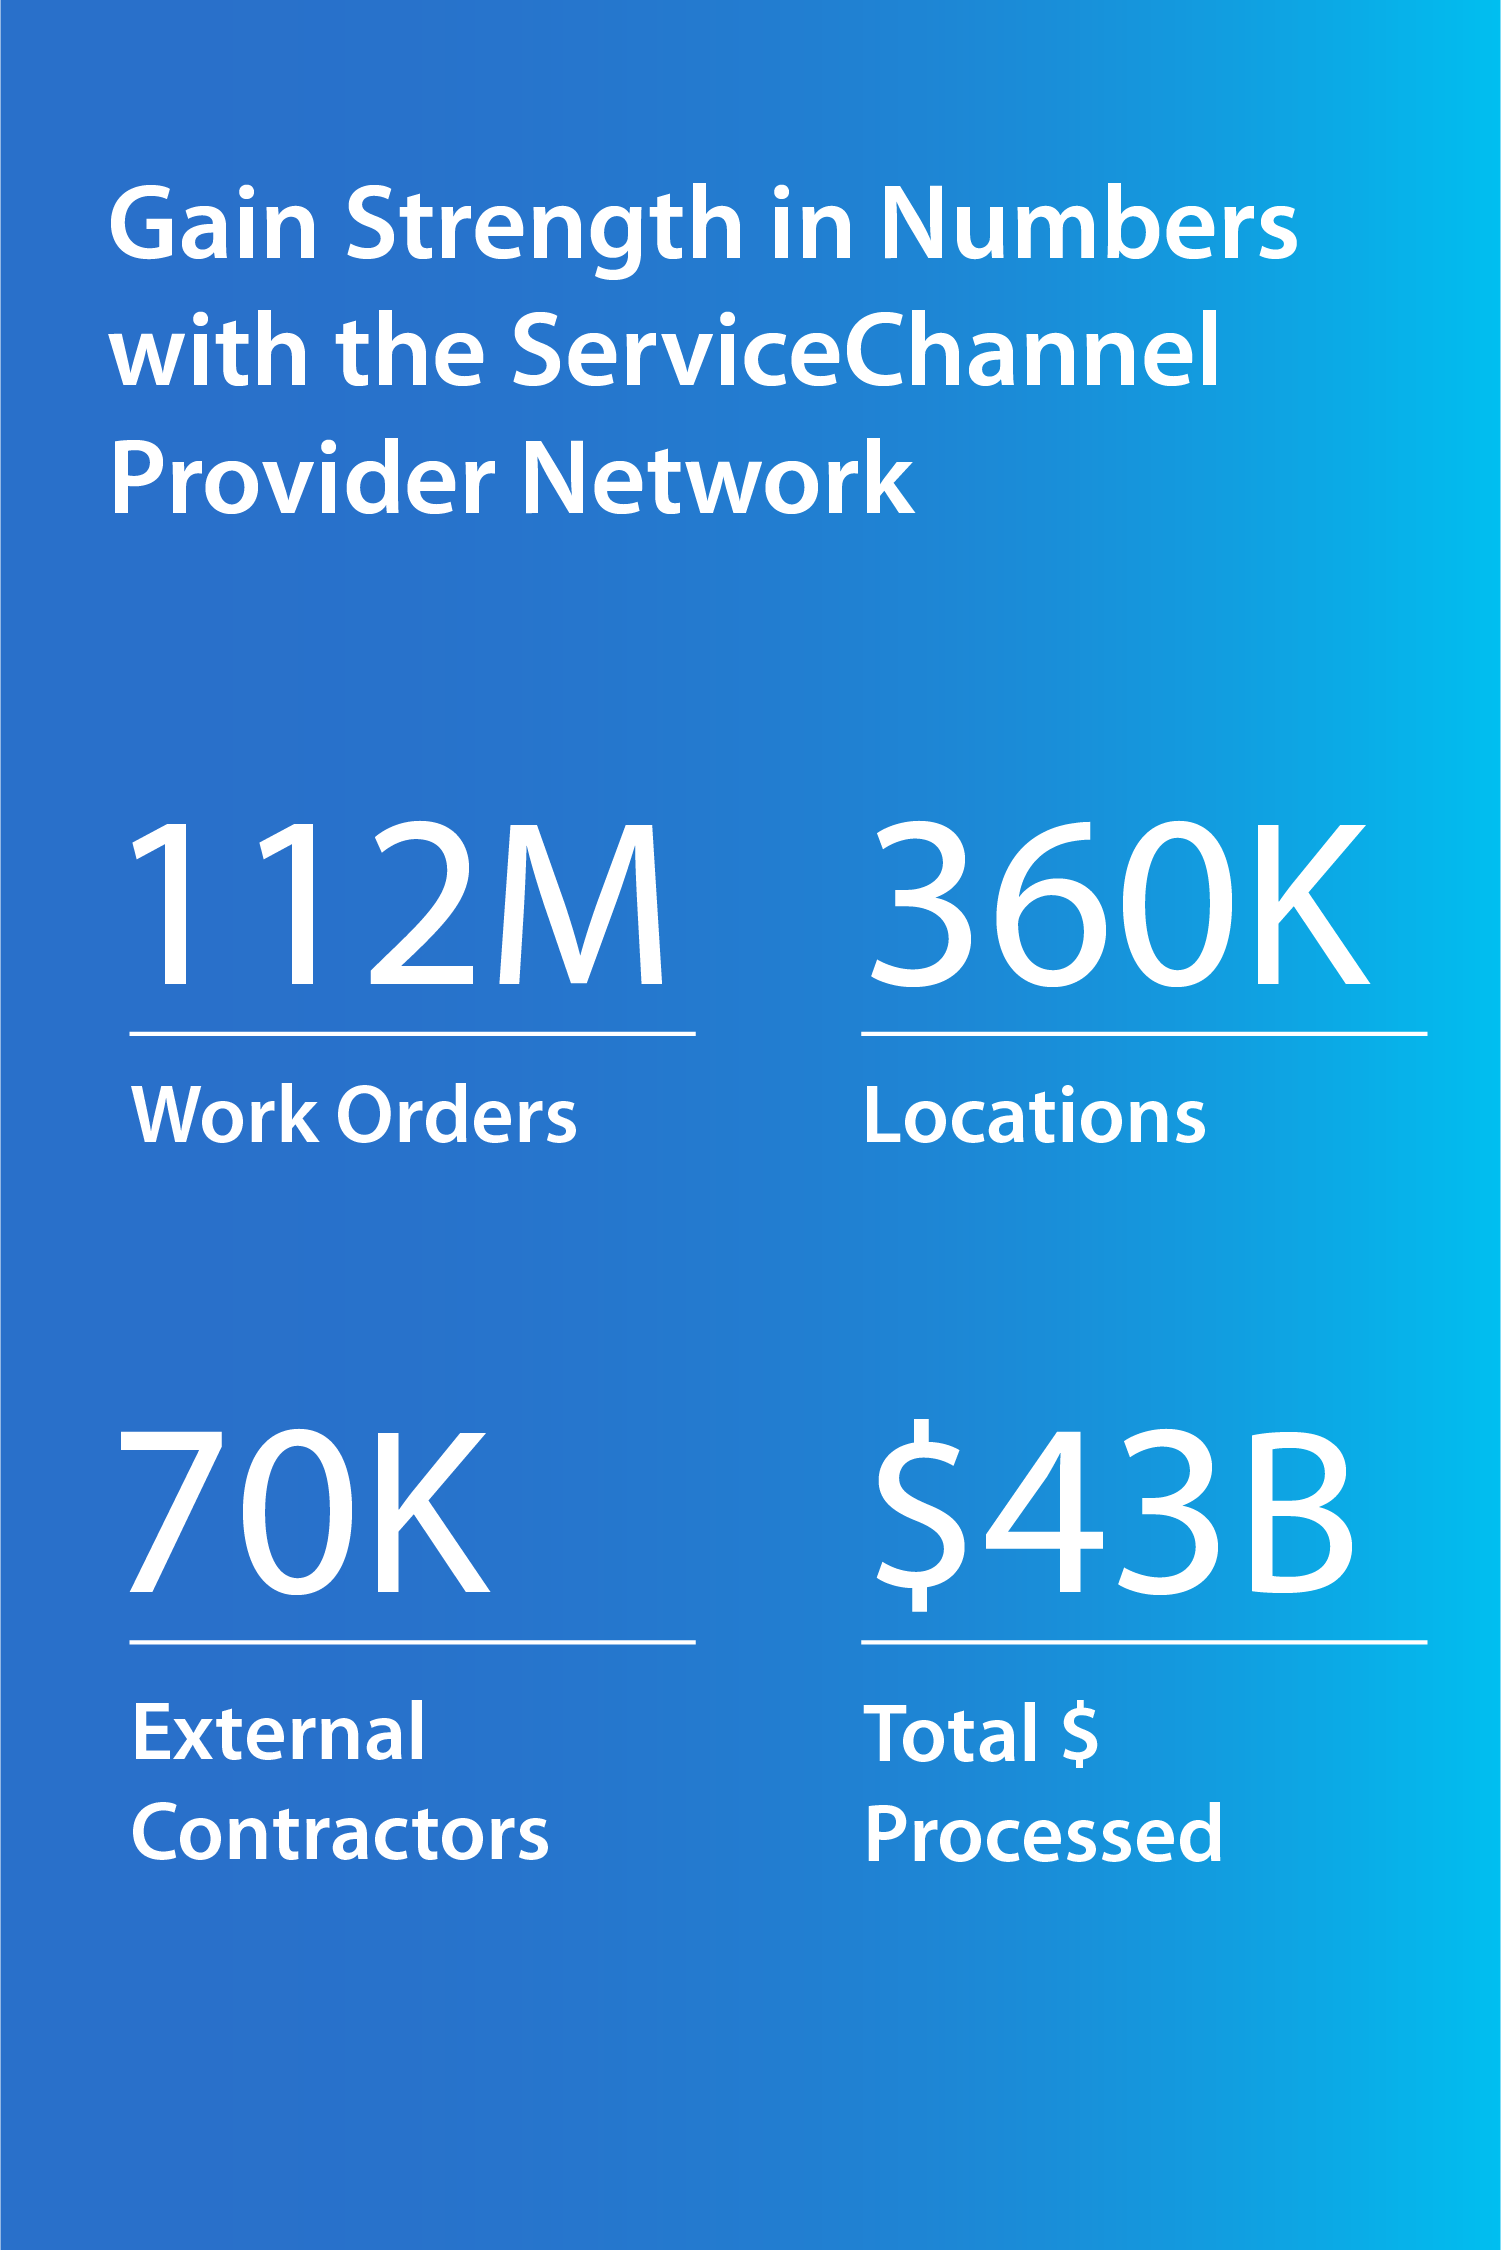 https://s3.amazonaws.com/servicechannel-wp/20200604173523/provider-stats-graphic-01.png